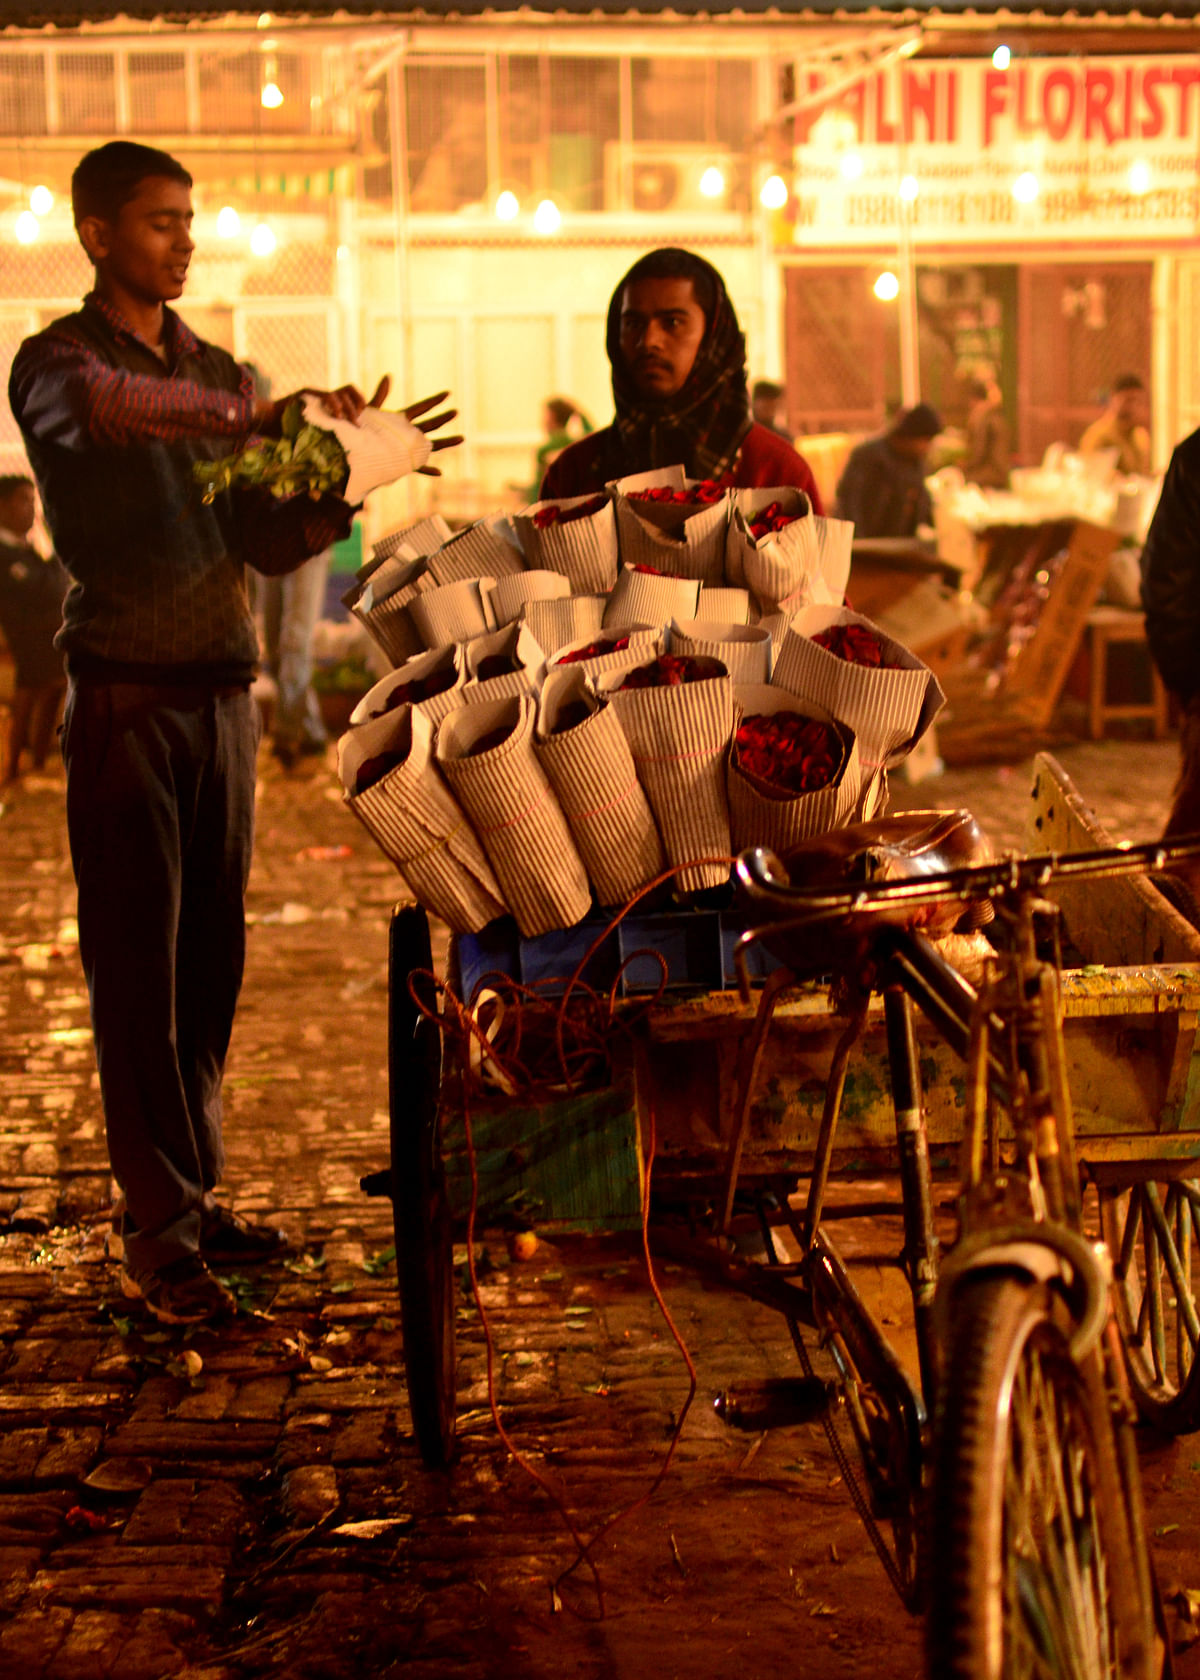 Dealers have created a standard of packing flowers in the market, to maintain uniformity. (Photo: Prashant Chahal/<b>The Quint</b>)